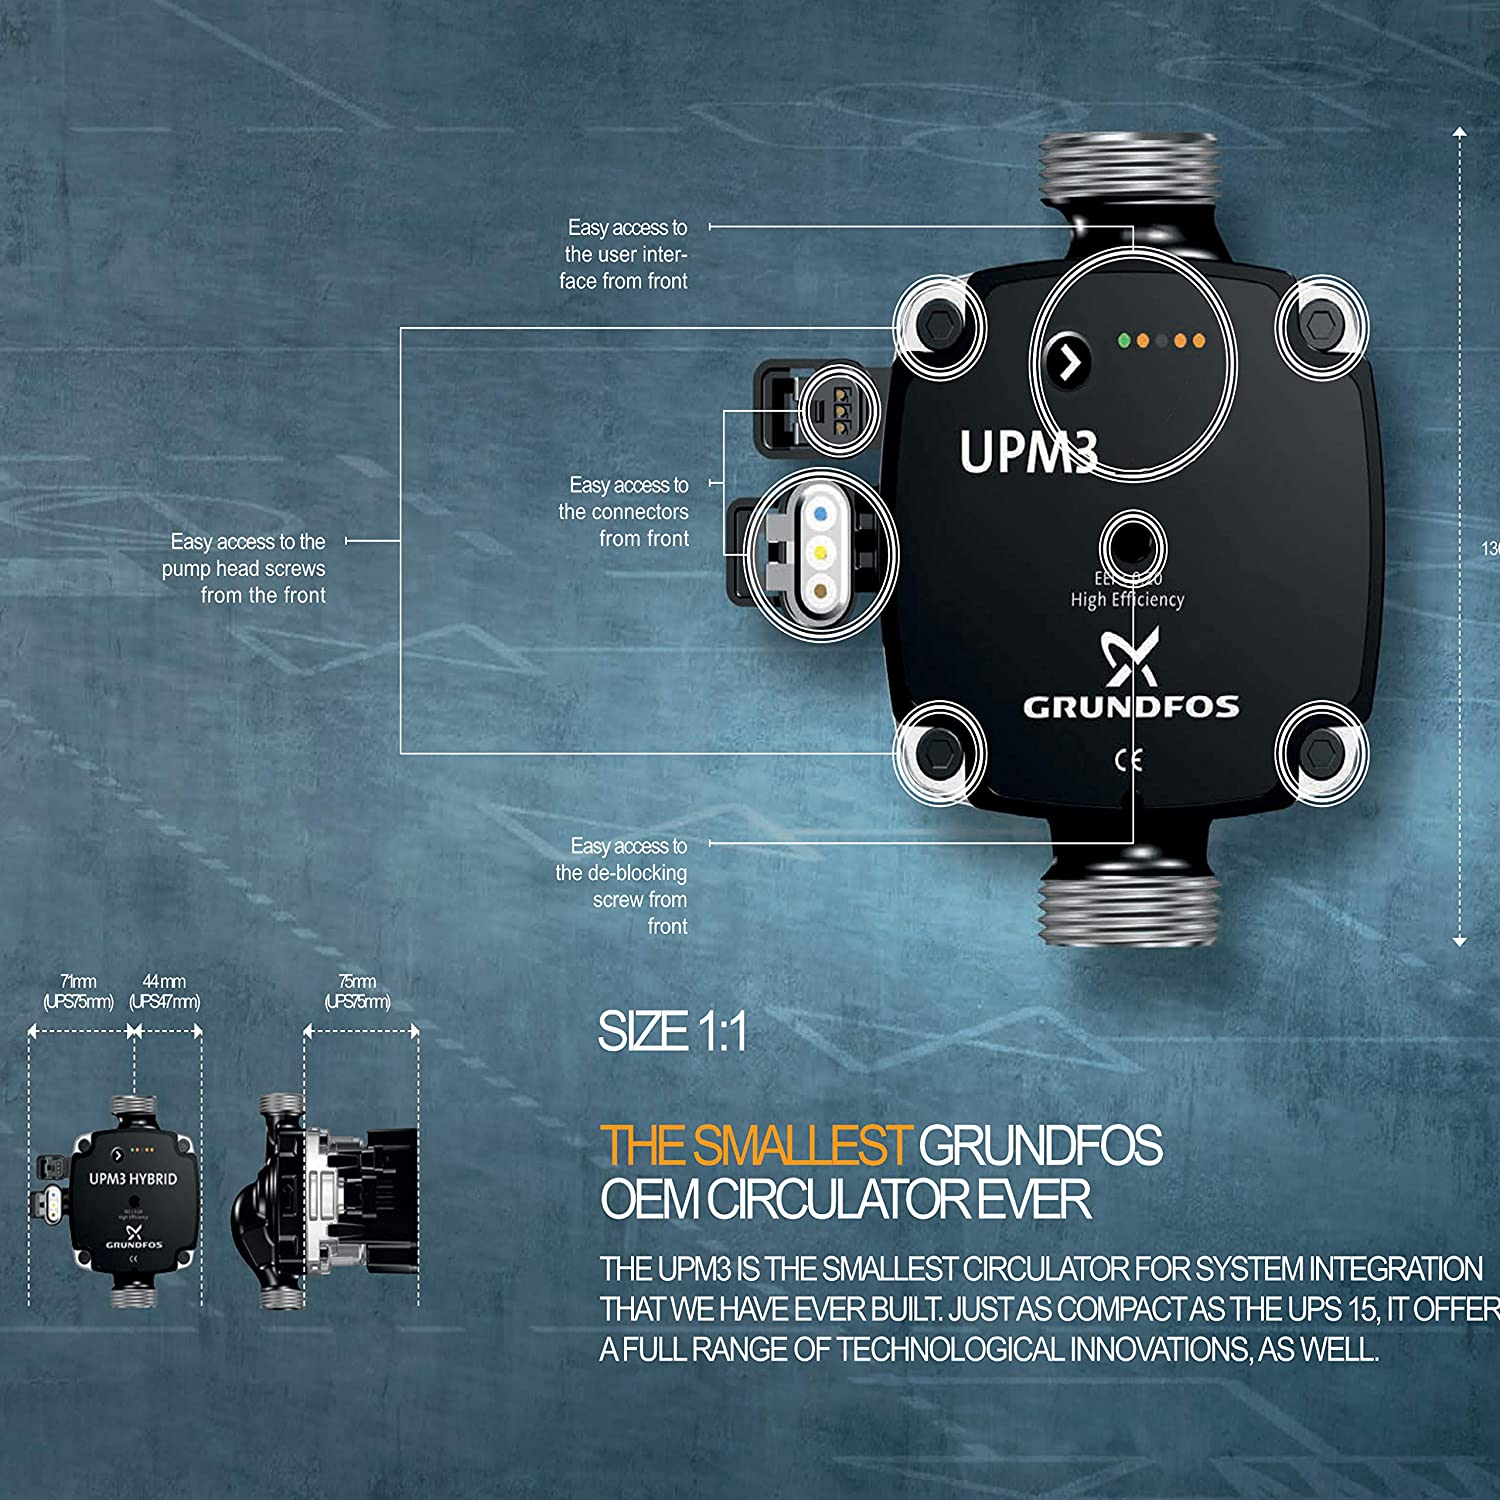 Grundfos UPM3 Flex AS Perfect for Water Underfloor Heating Circulation Pump for HVAC Systems Including Kudos Tradings Next Working Day Prime Delivery.